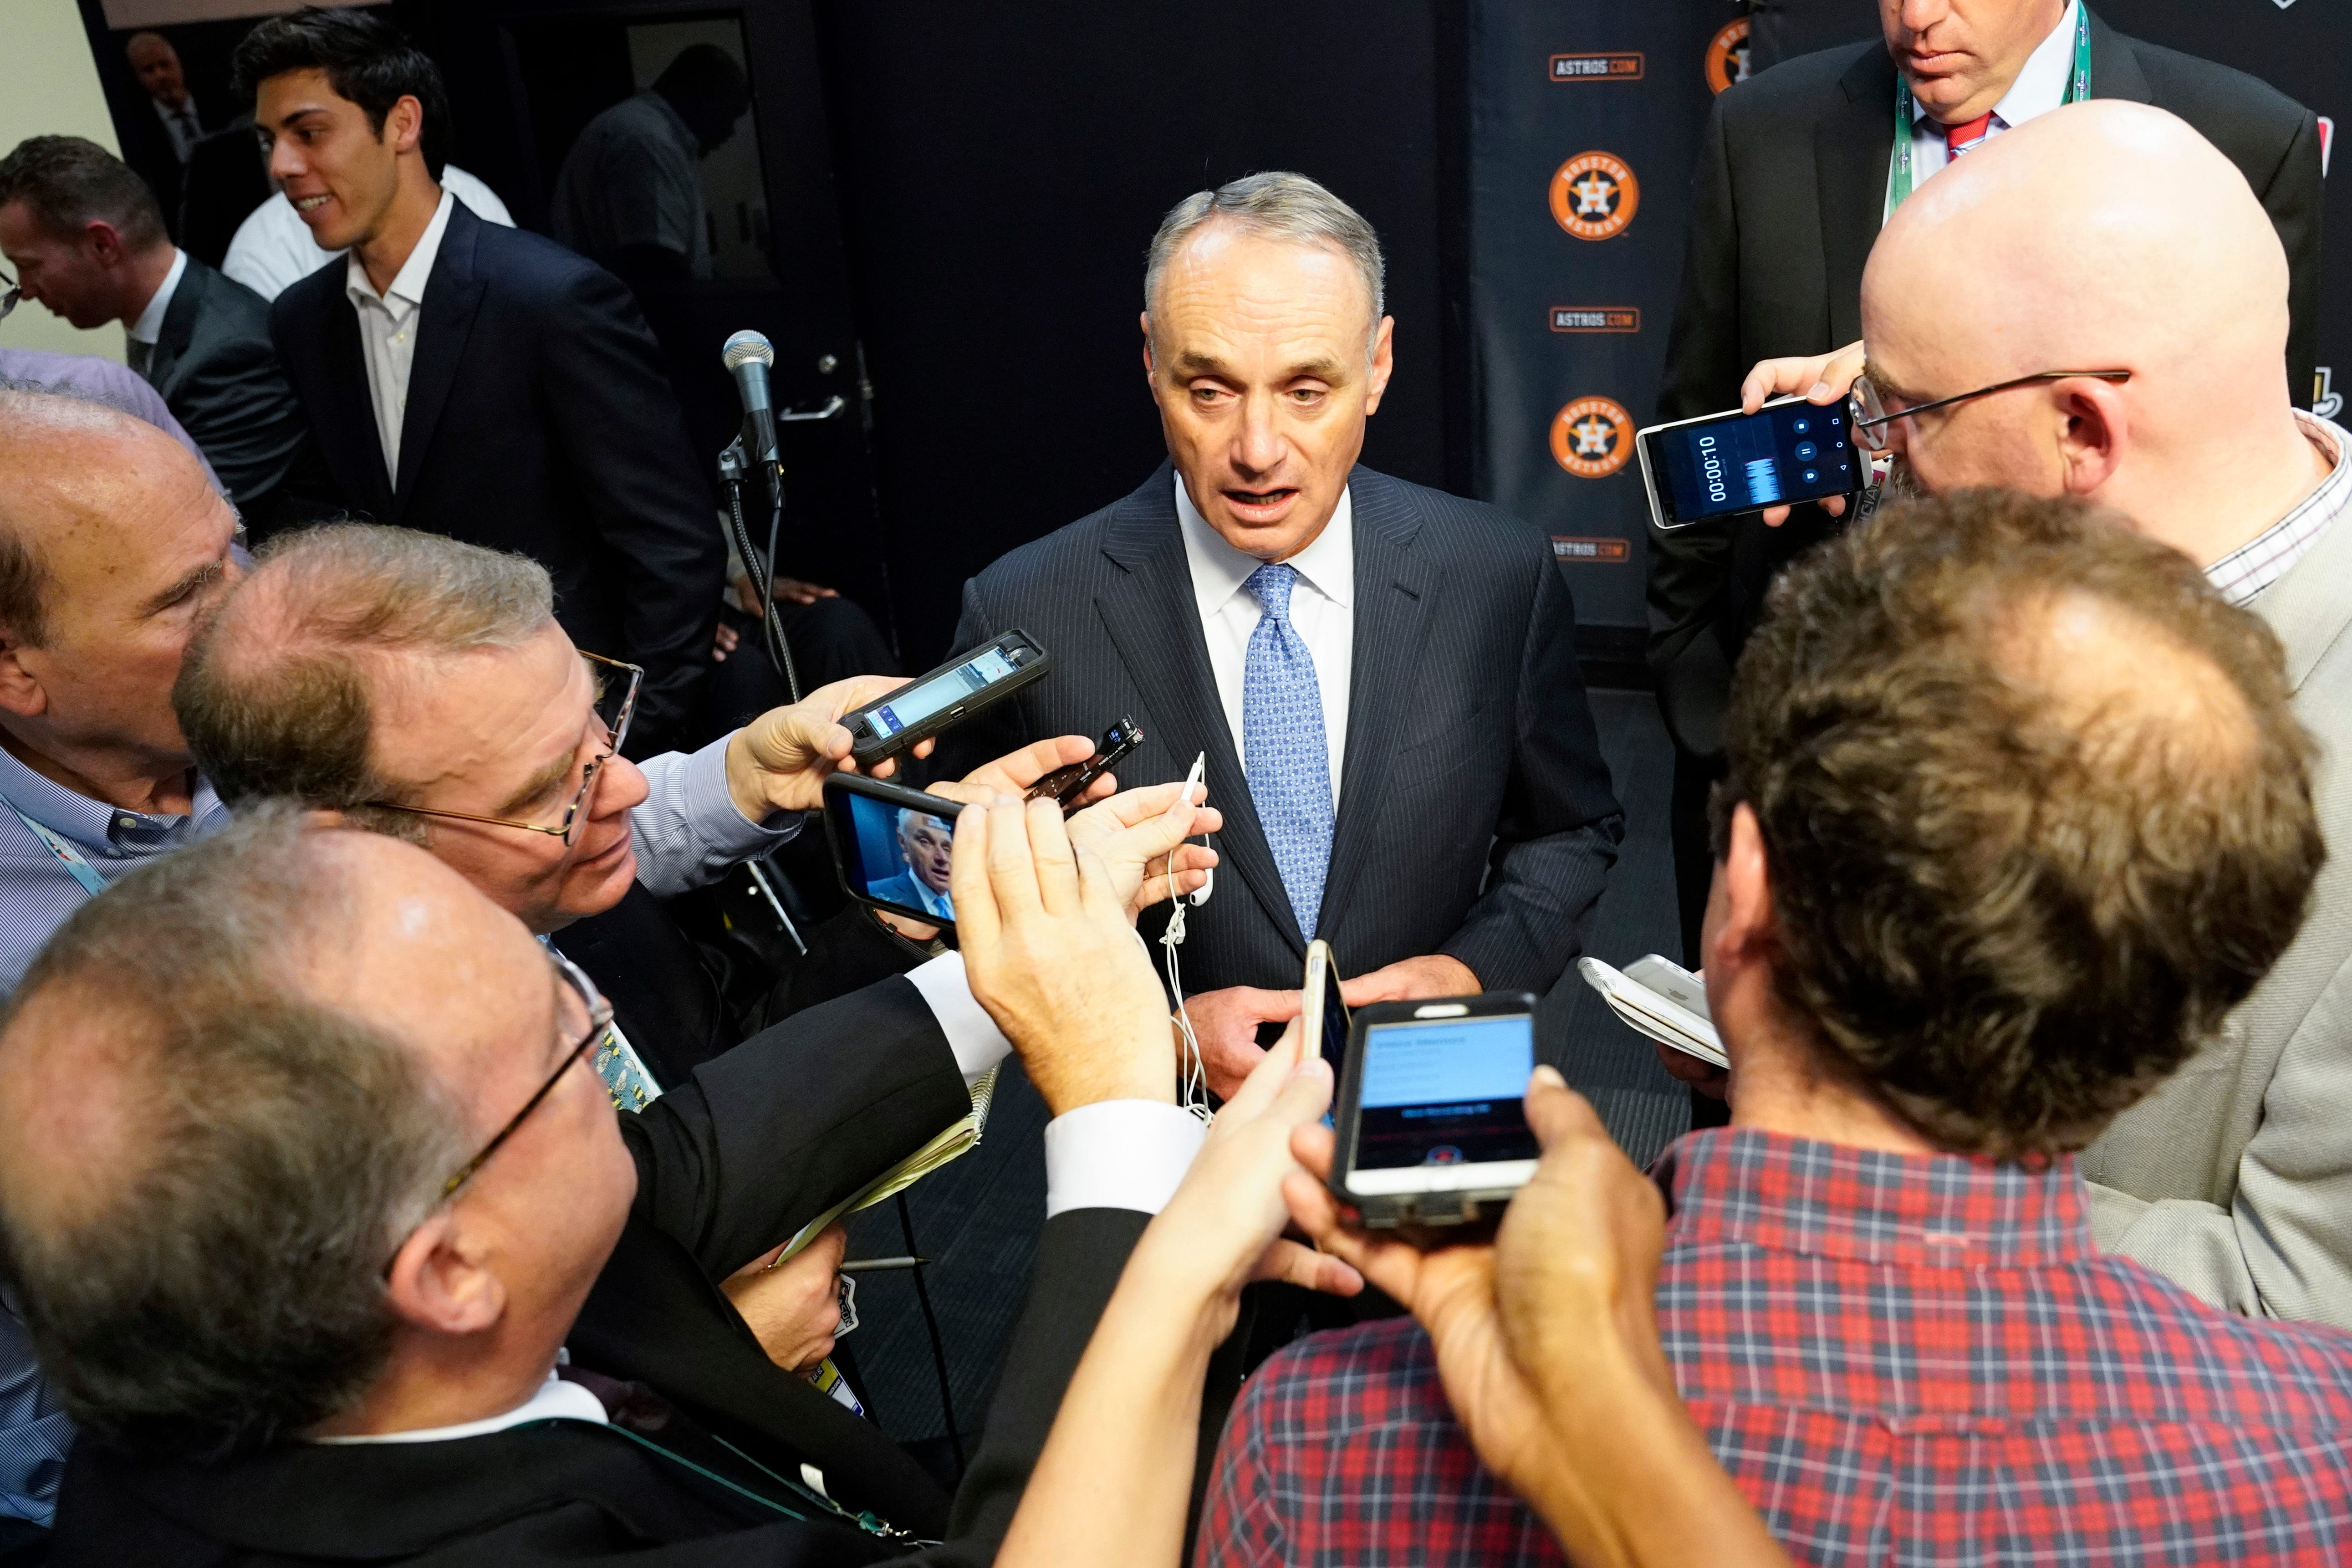 MLB commissioner Rob Manfred on Astros controversy: We have to be tremendously concerned